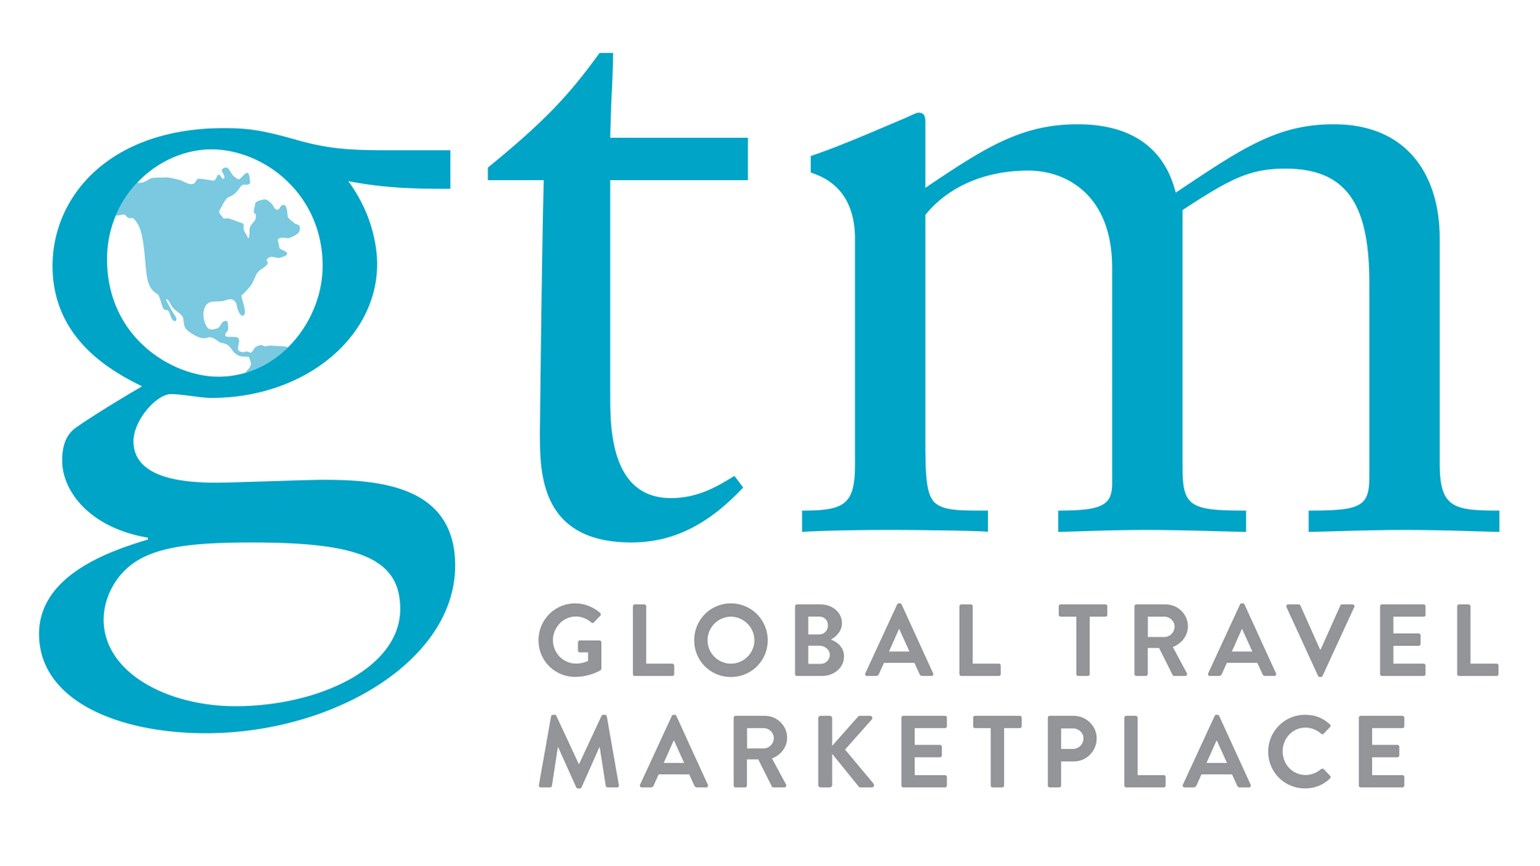 Applications open for annual Global Travel Marketplace events